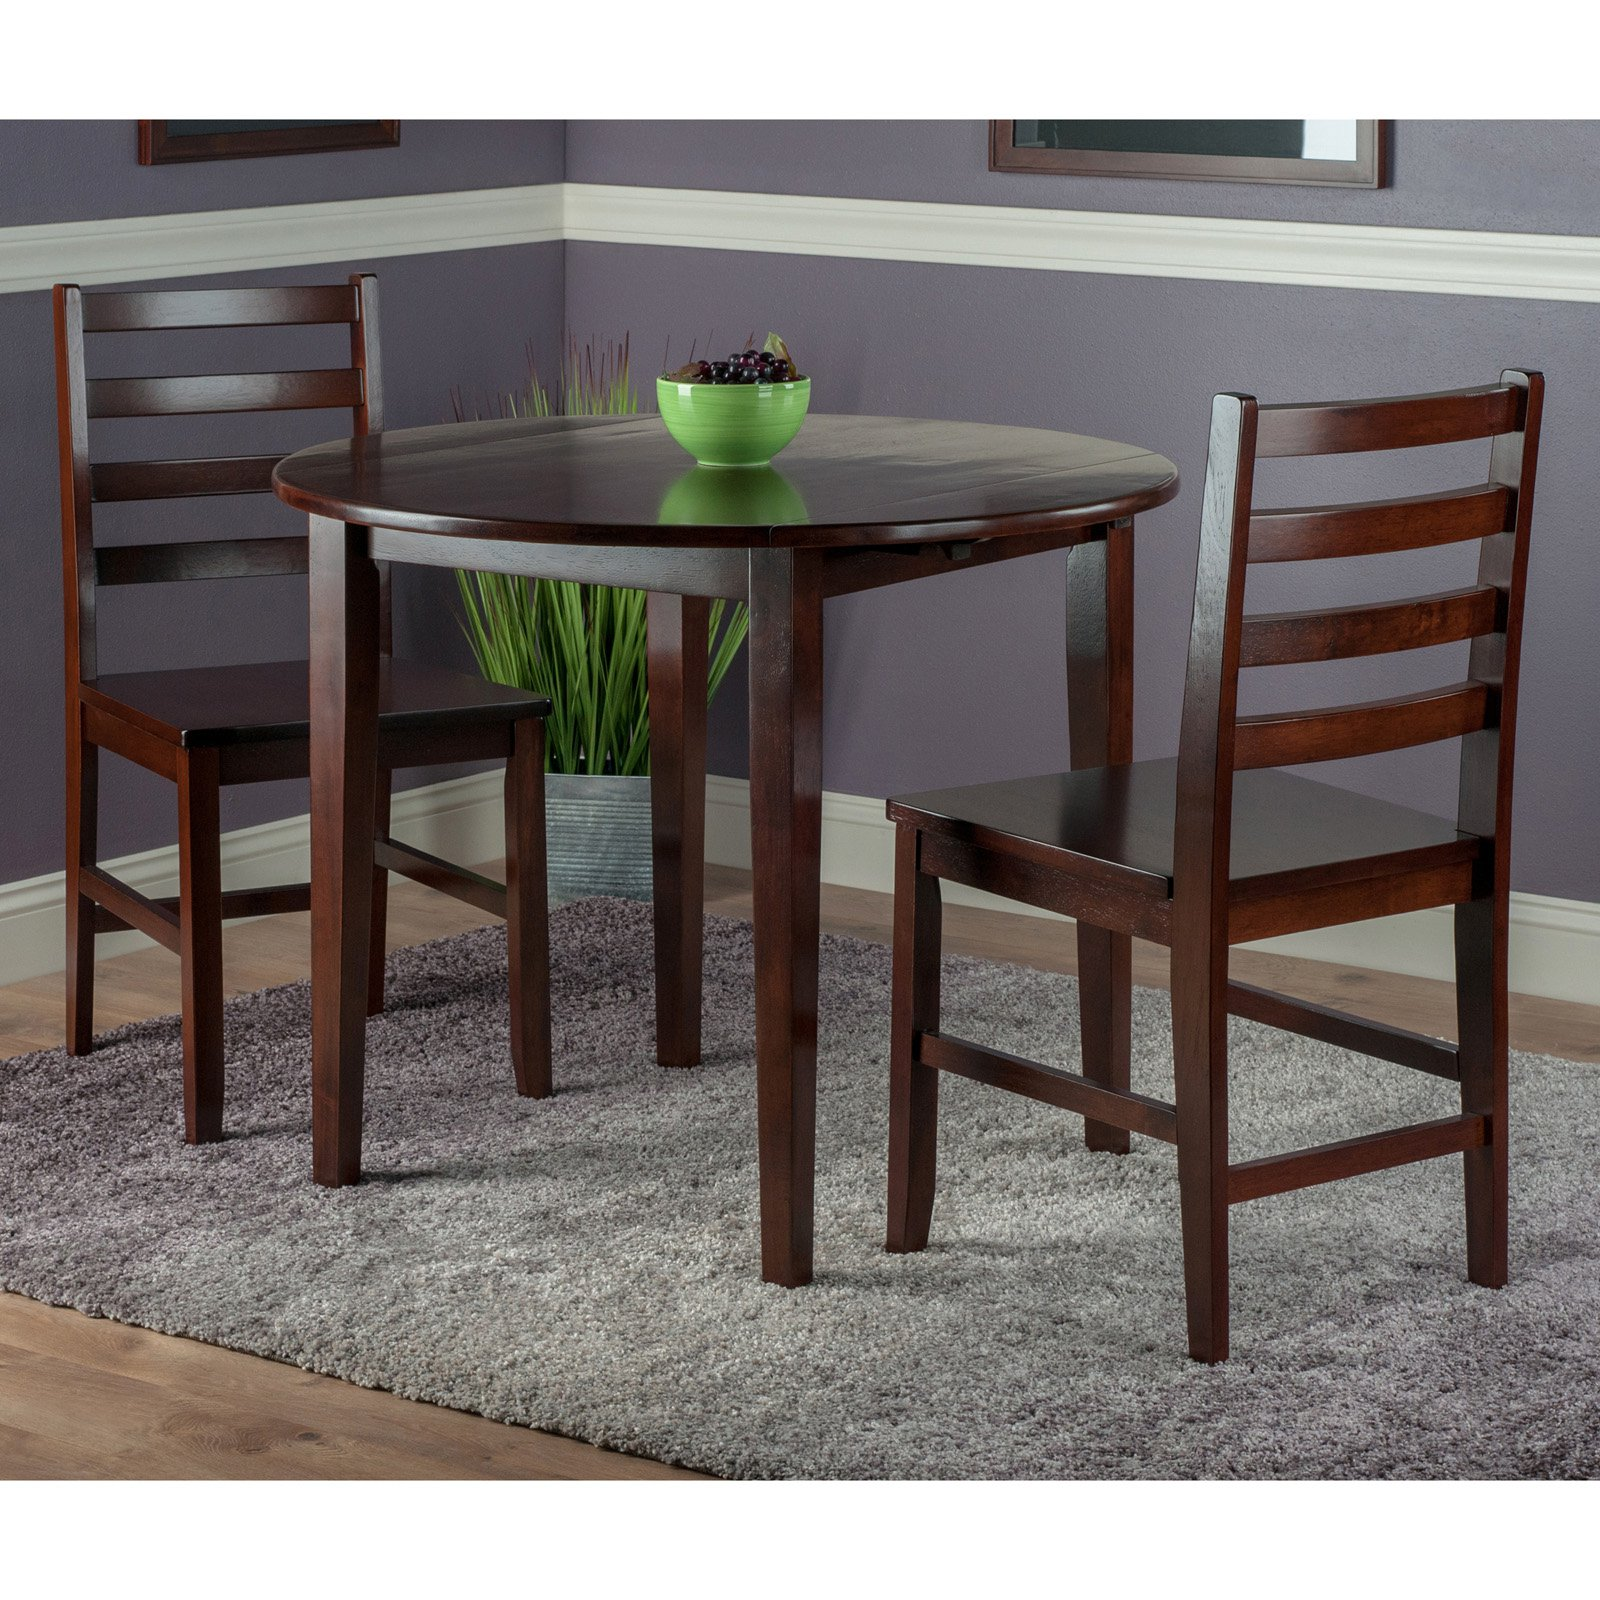 Clayton 3-PC Set Drop Leaf Table with 2 Ladderback Chairs